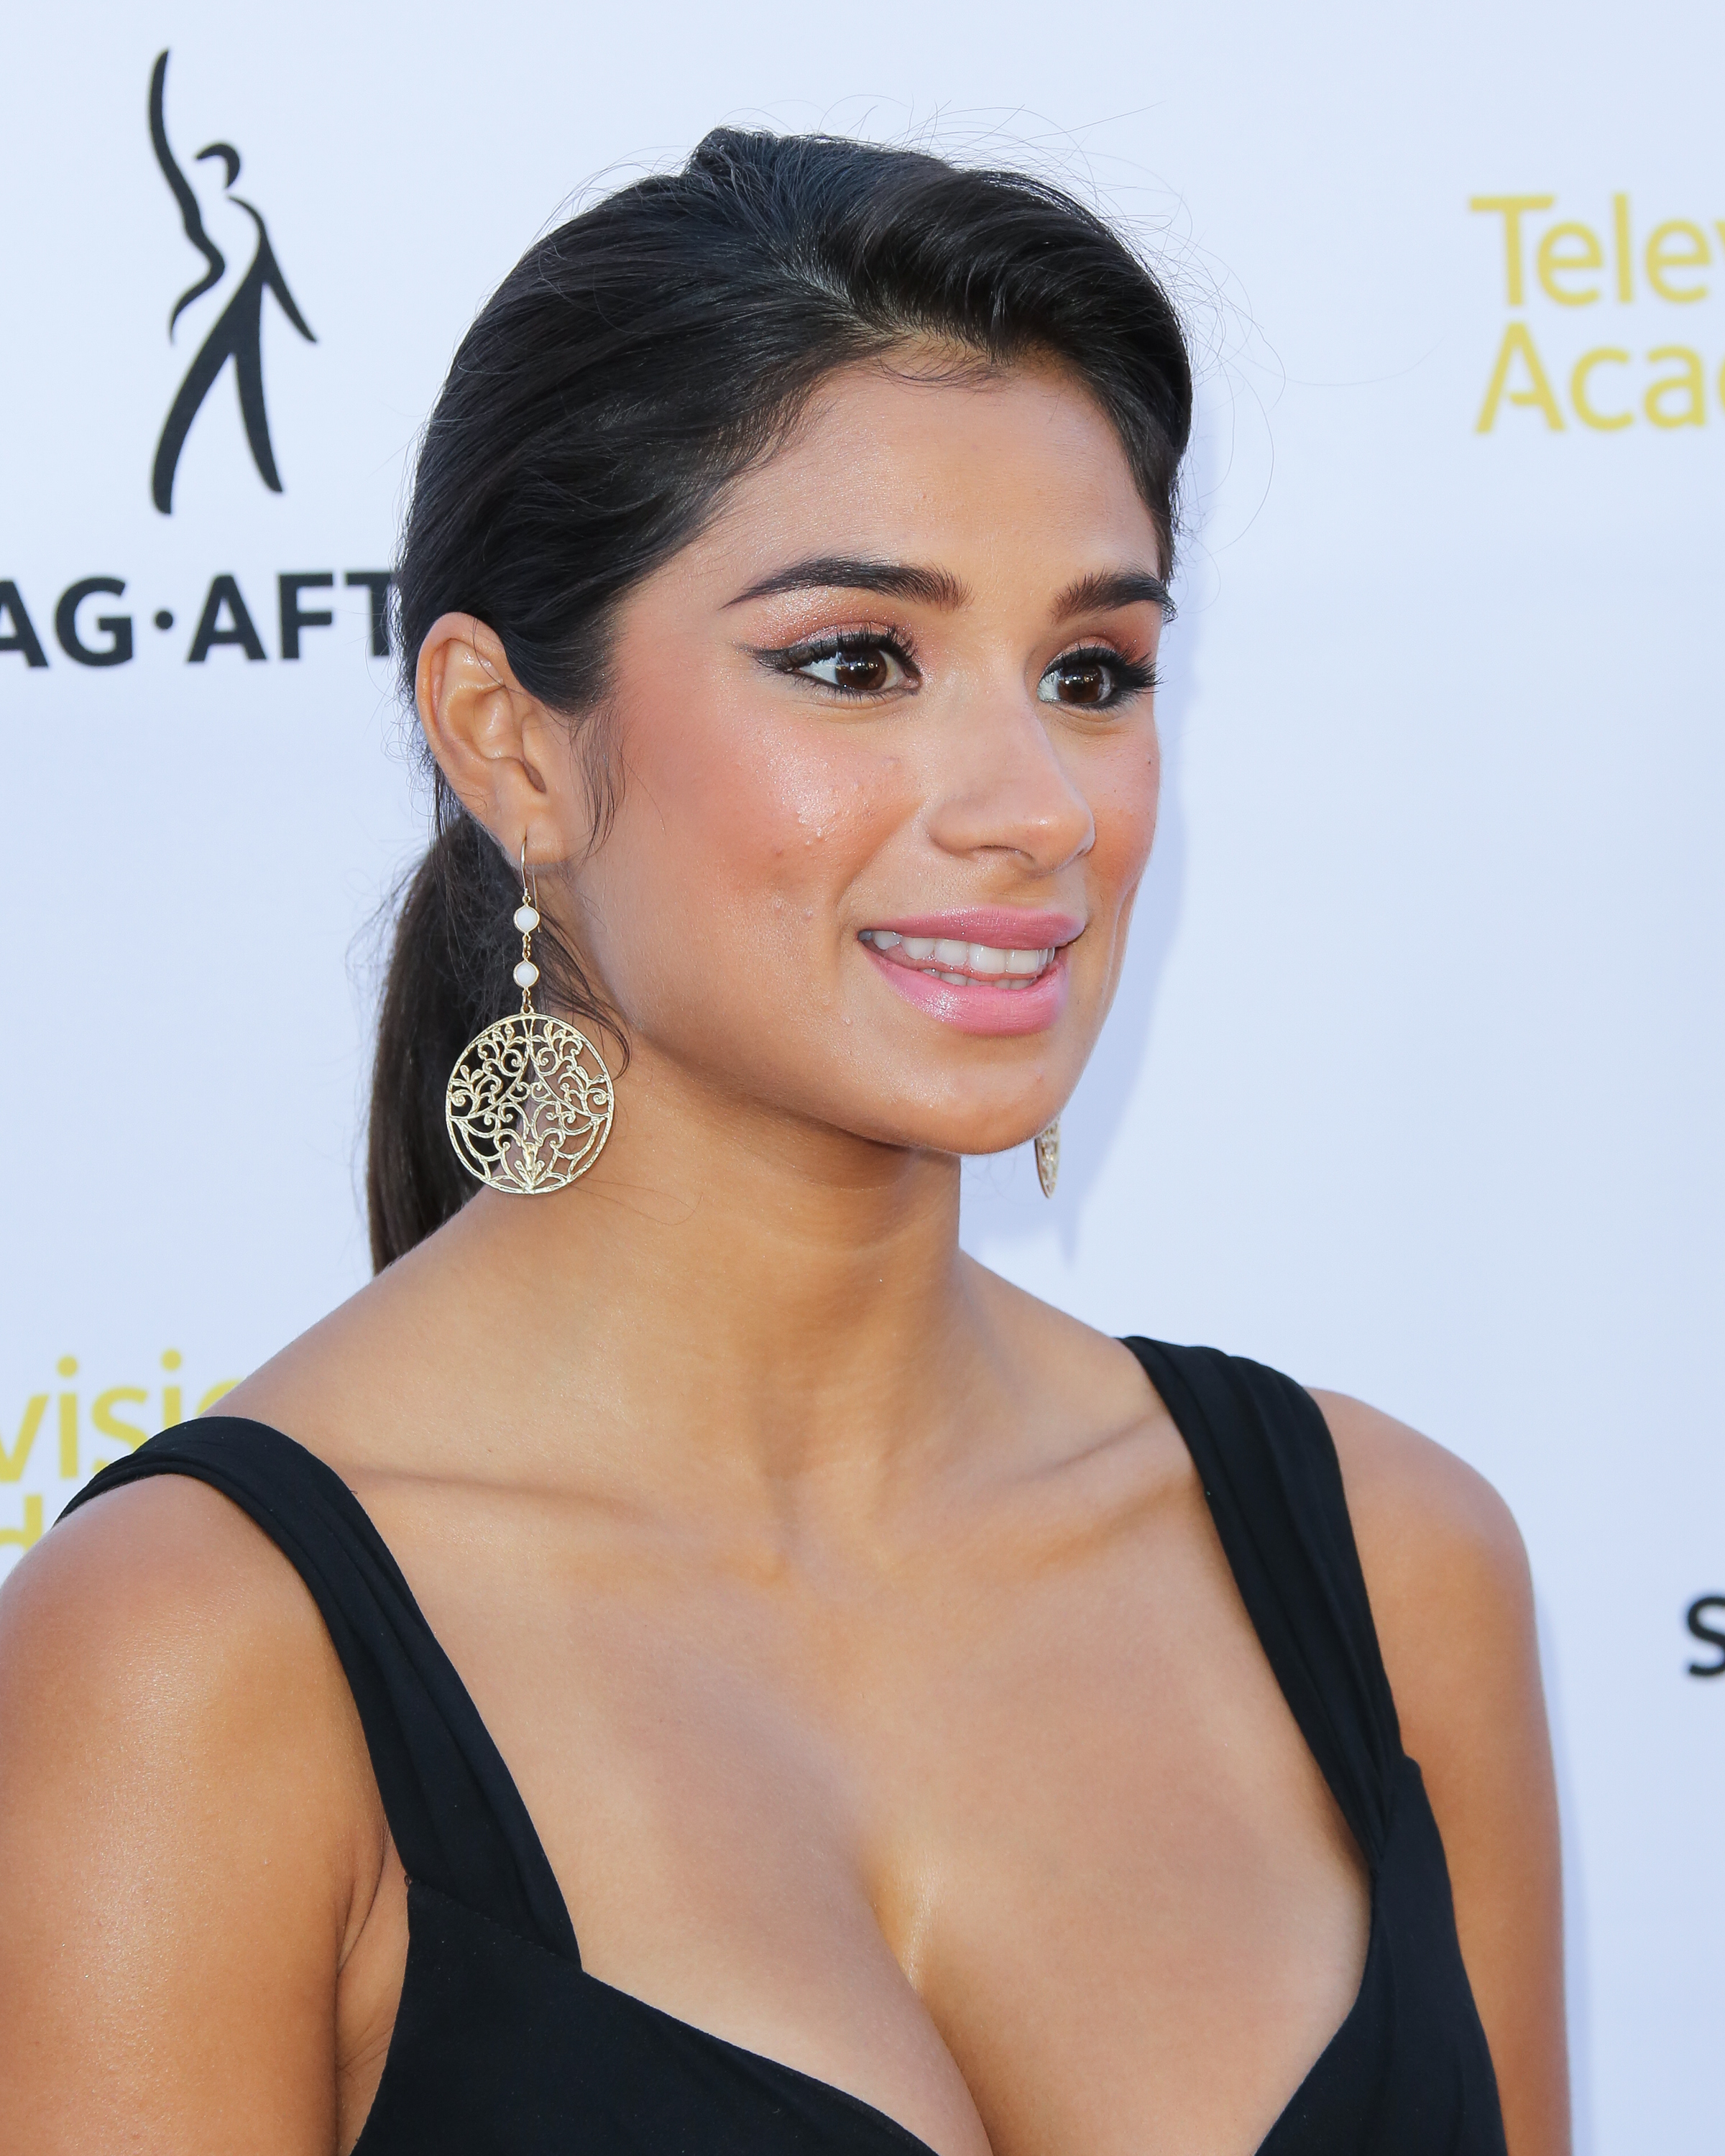 Actress Diane Guerrero attends the Television Academy and SAG-AFTRA's presentation of Dynamic and Diverse: A 66th Emmy Awards celebration of Diversity on August 12, 2014 in North Hollywood, California.  (Paul Archuleta--FilmMagic)